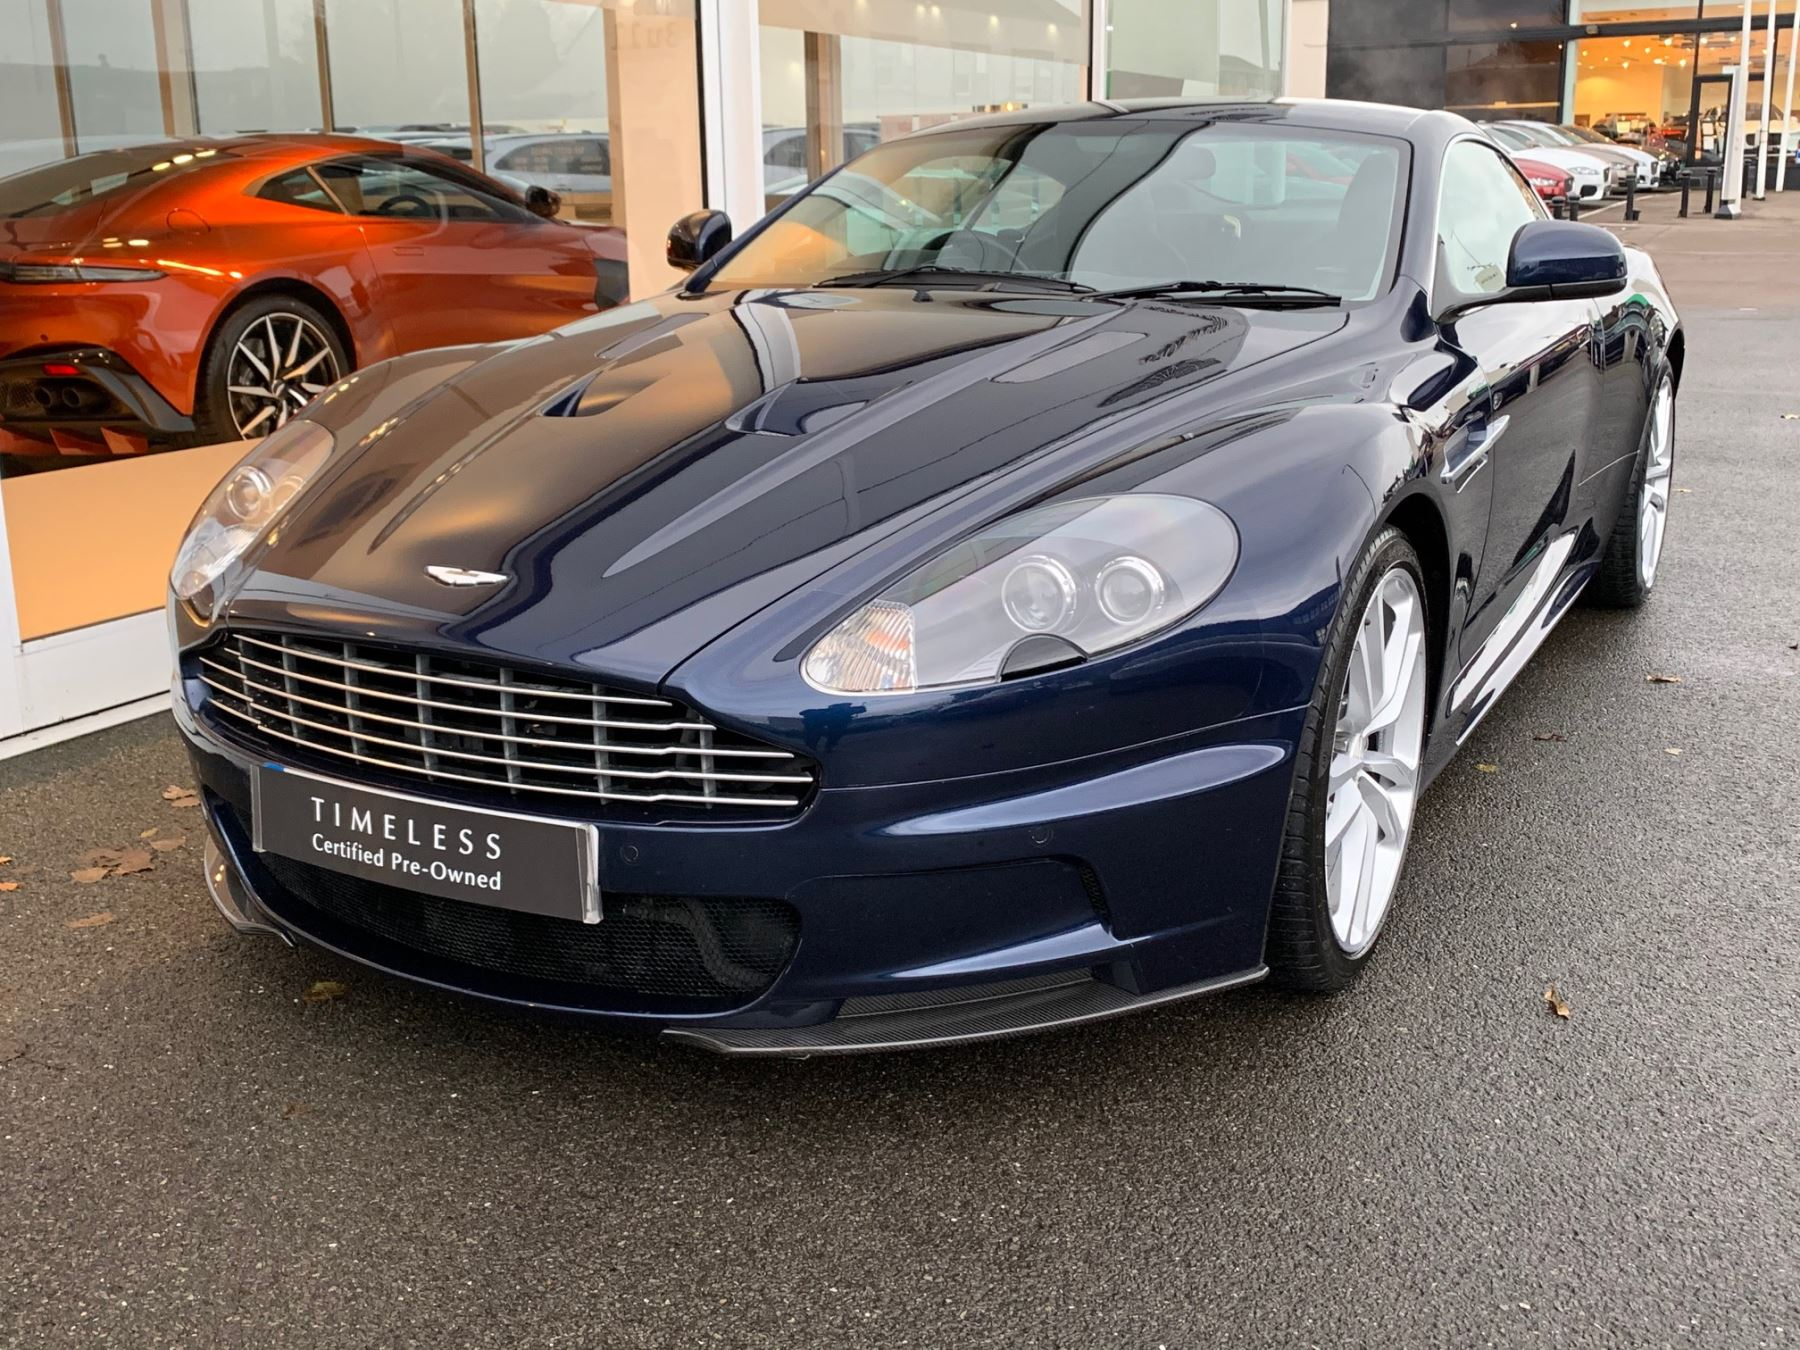 Aston Martin DBS V12 2dr Touchtronic image 5